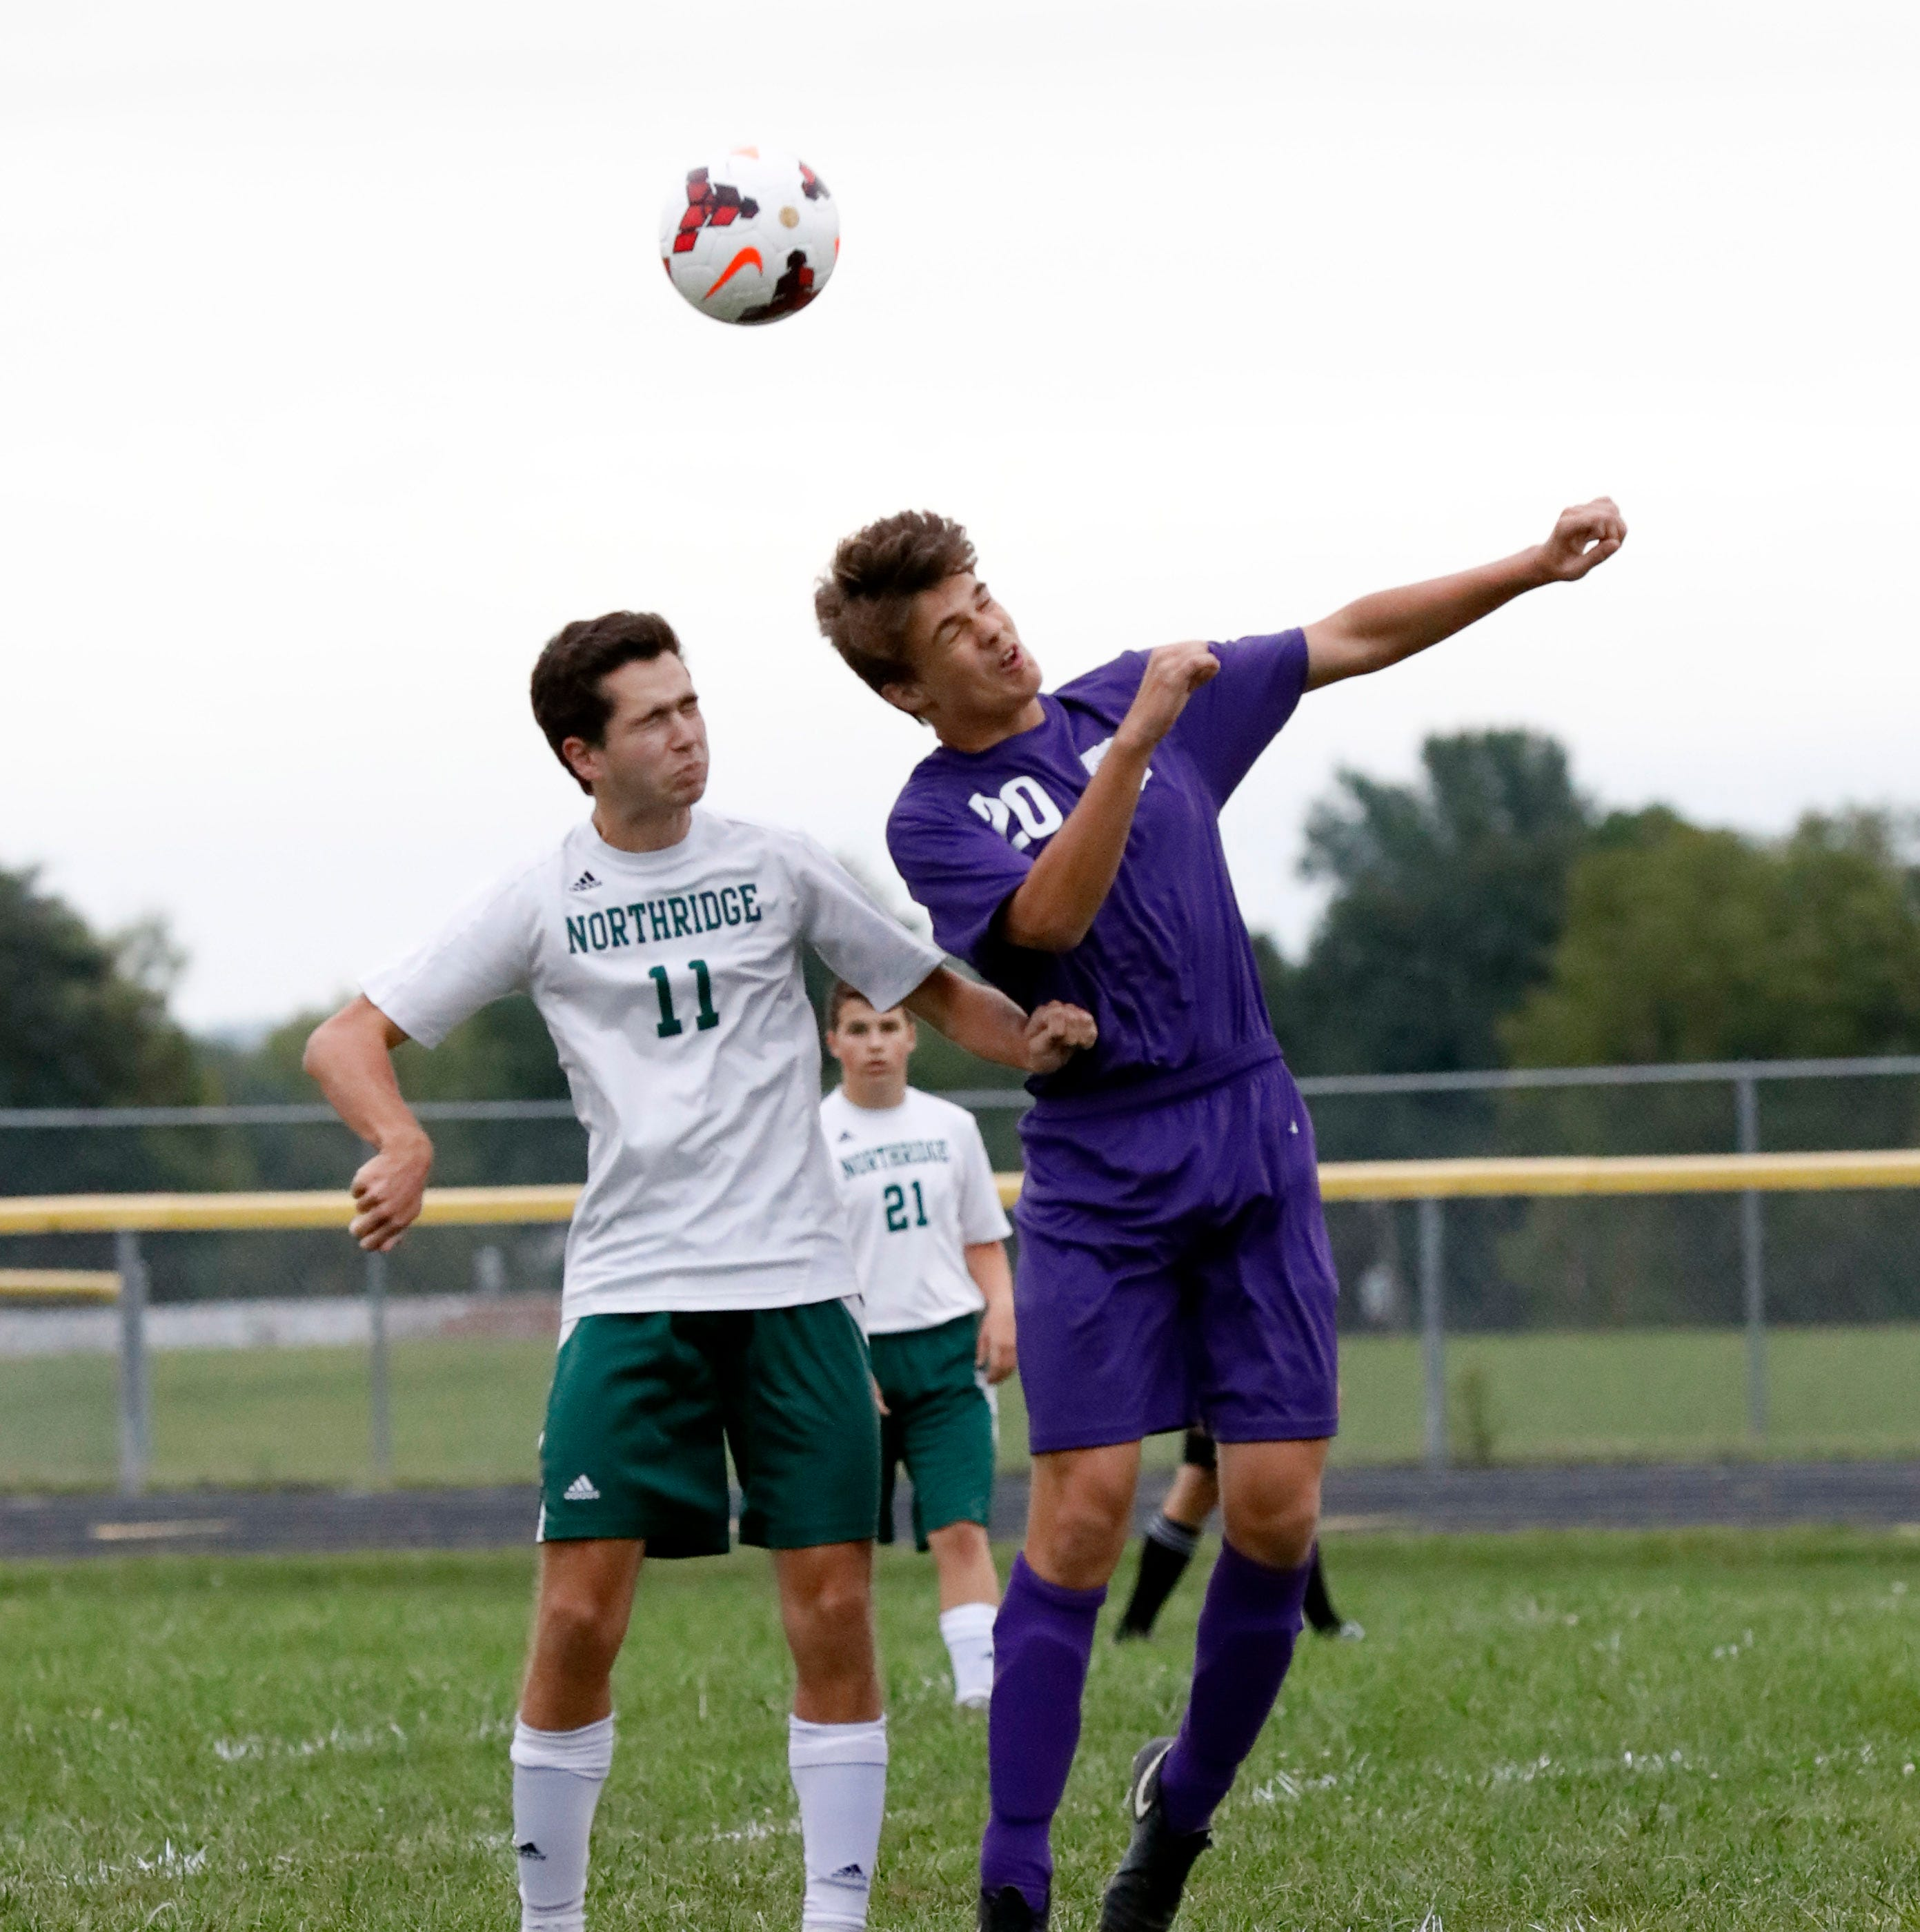 Soccer brings a new level of excitement at Millersport